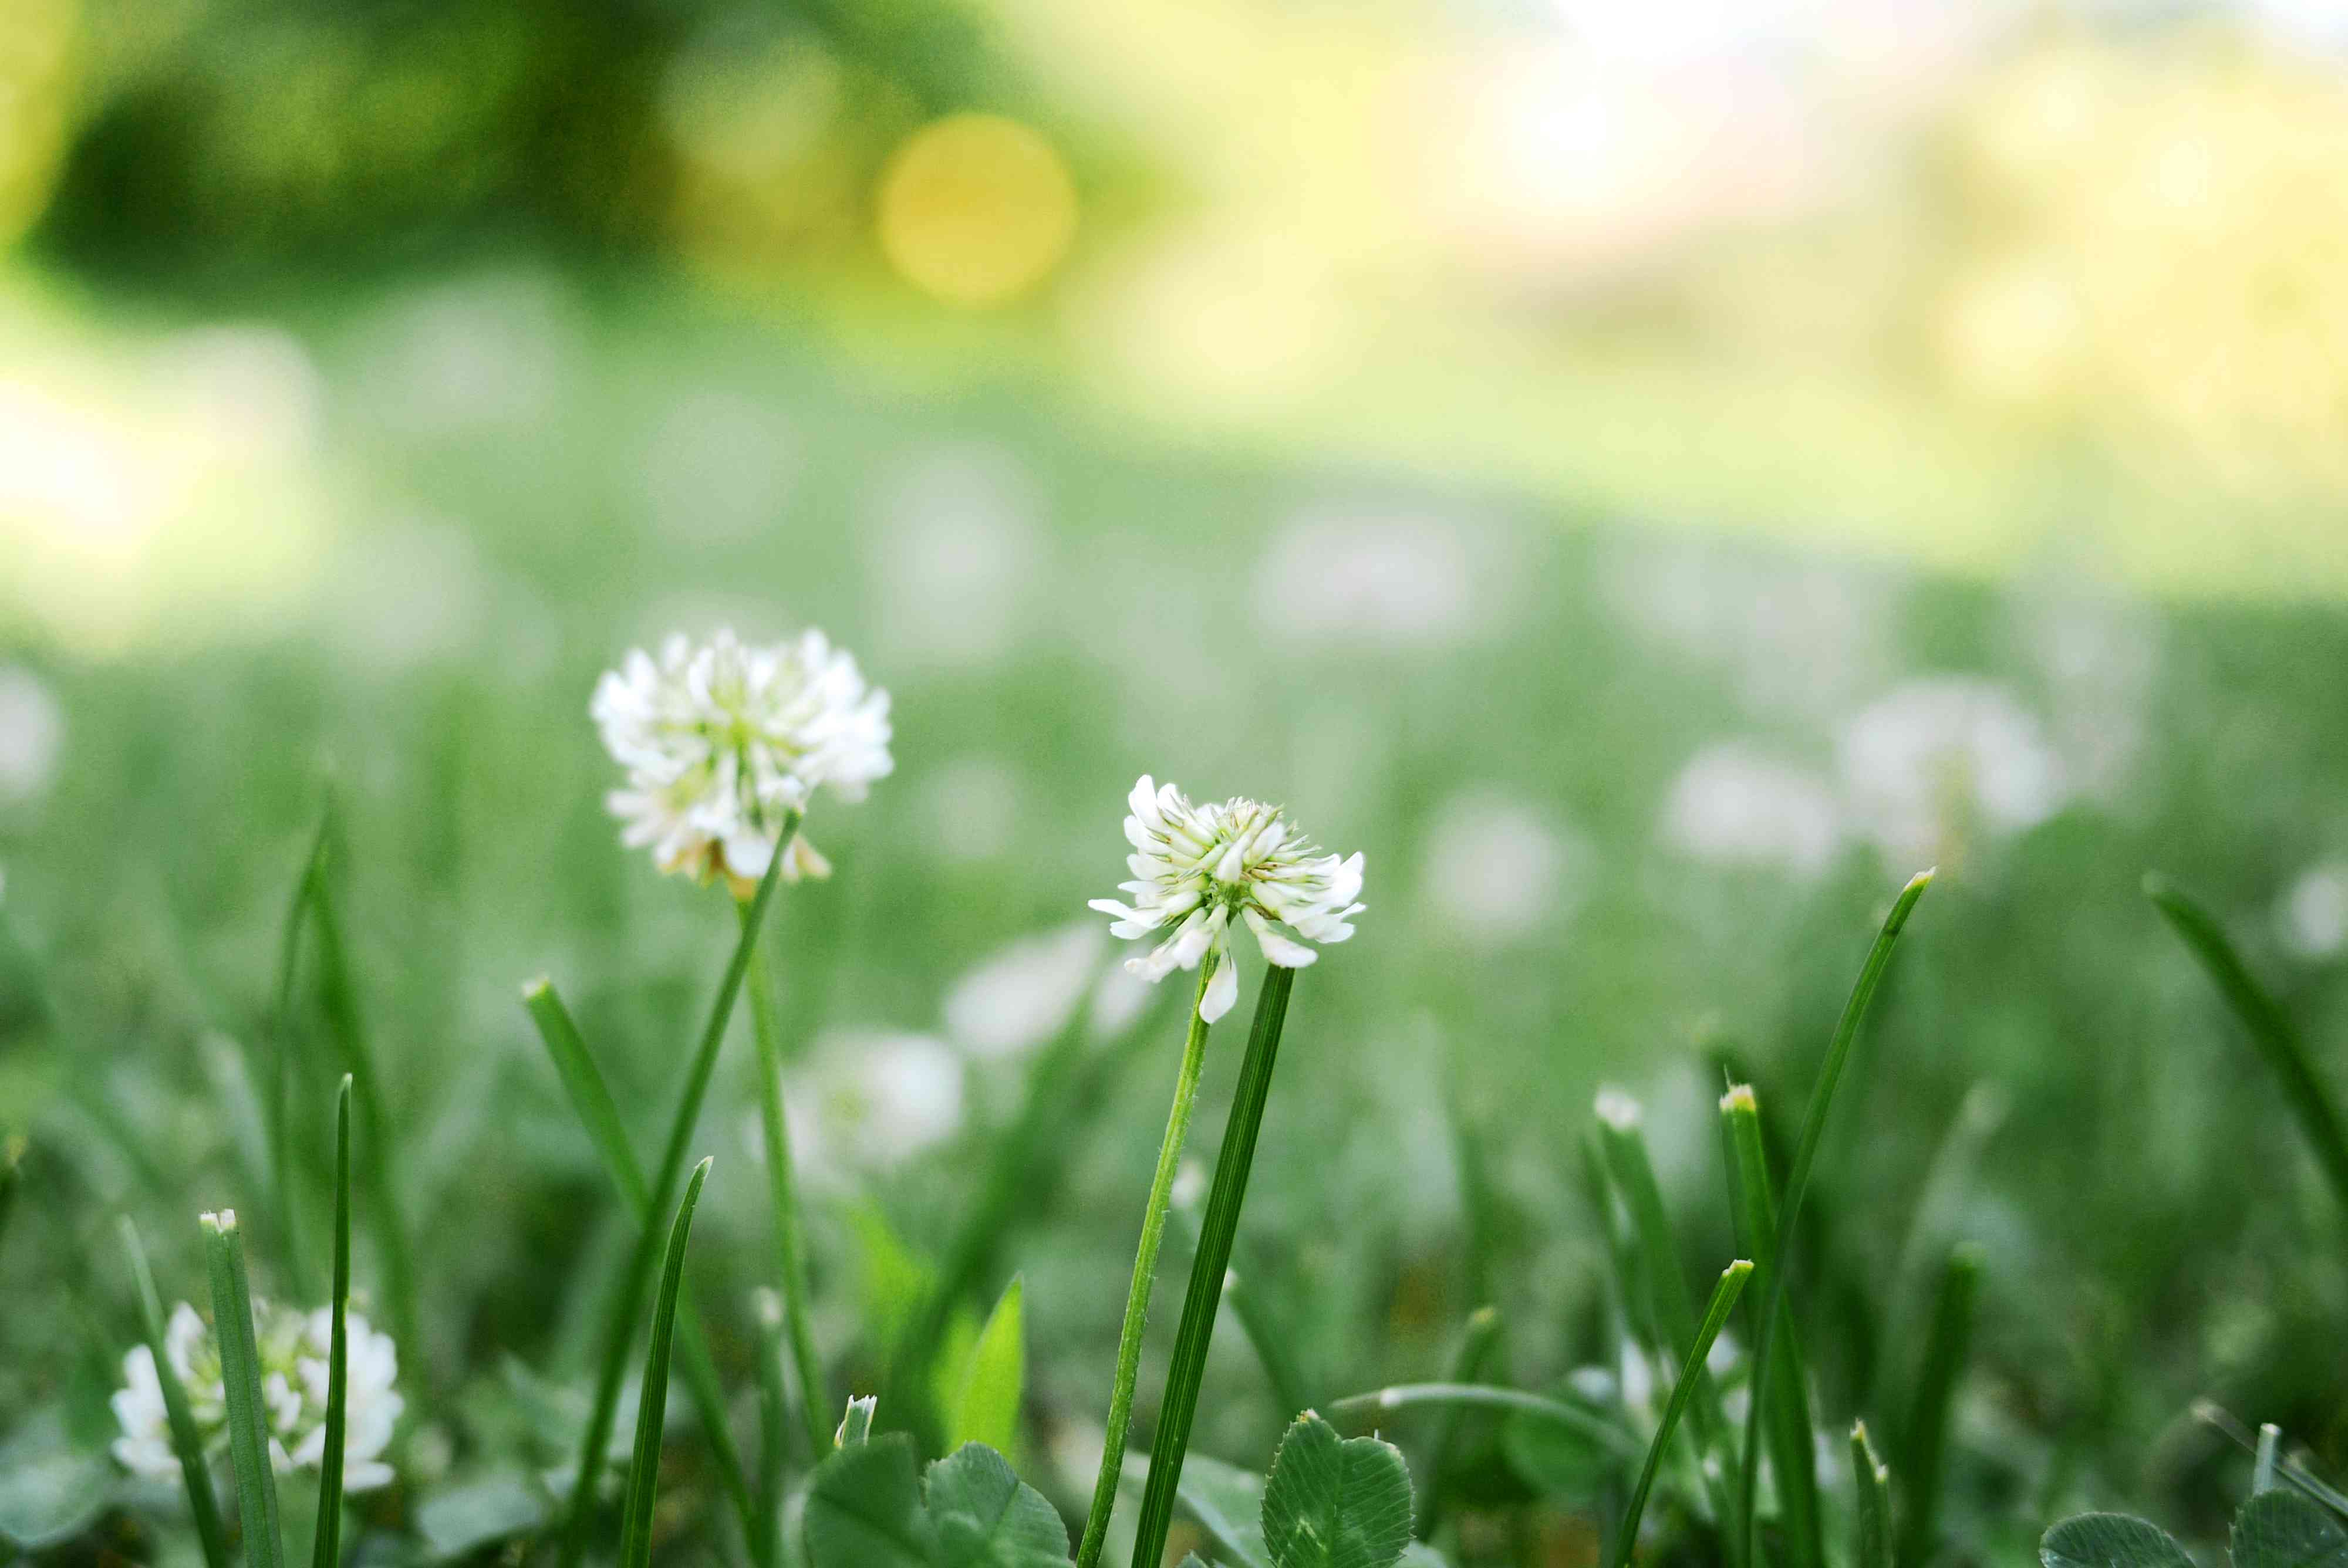 Meadow with white clover (Trifolium repens)